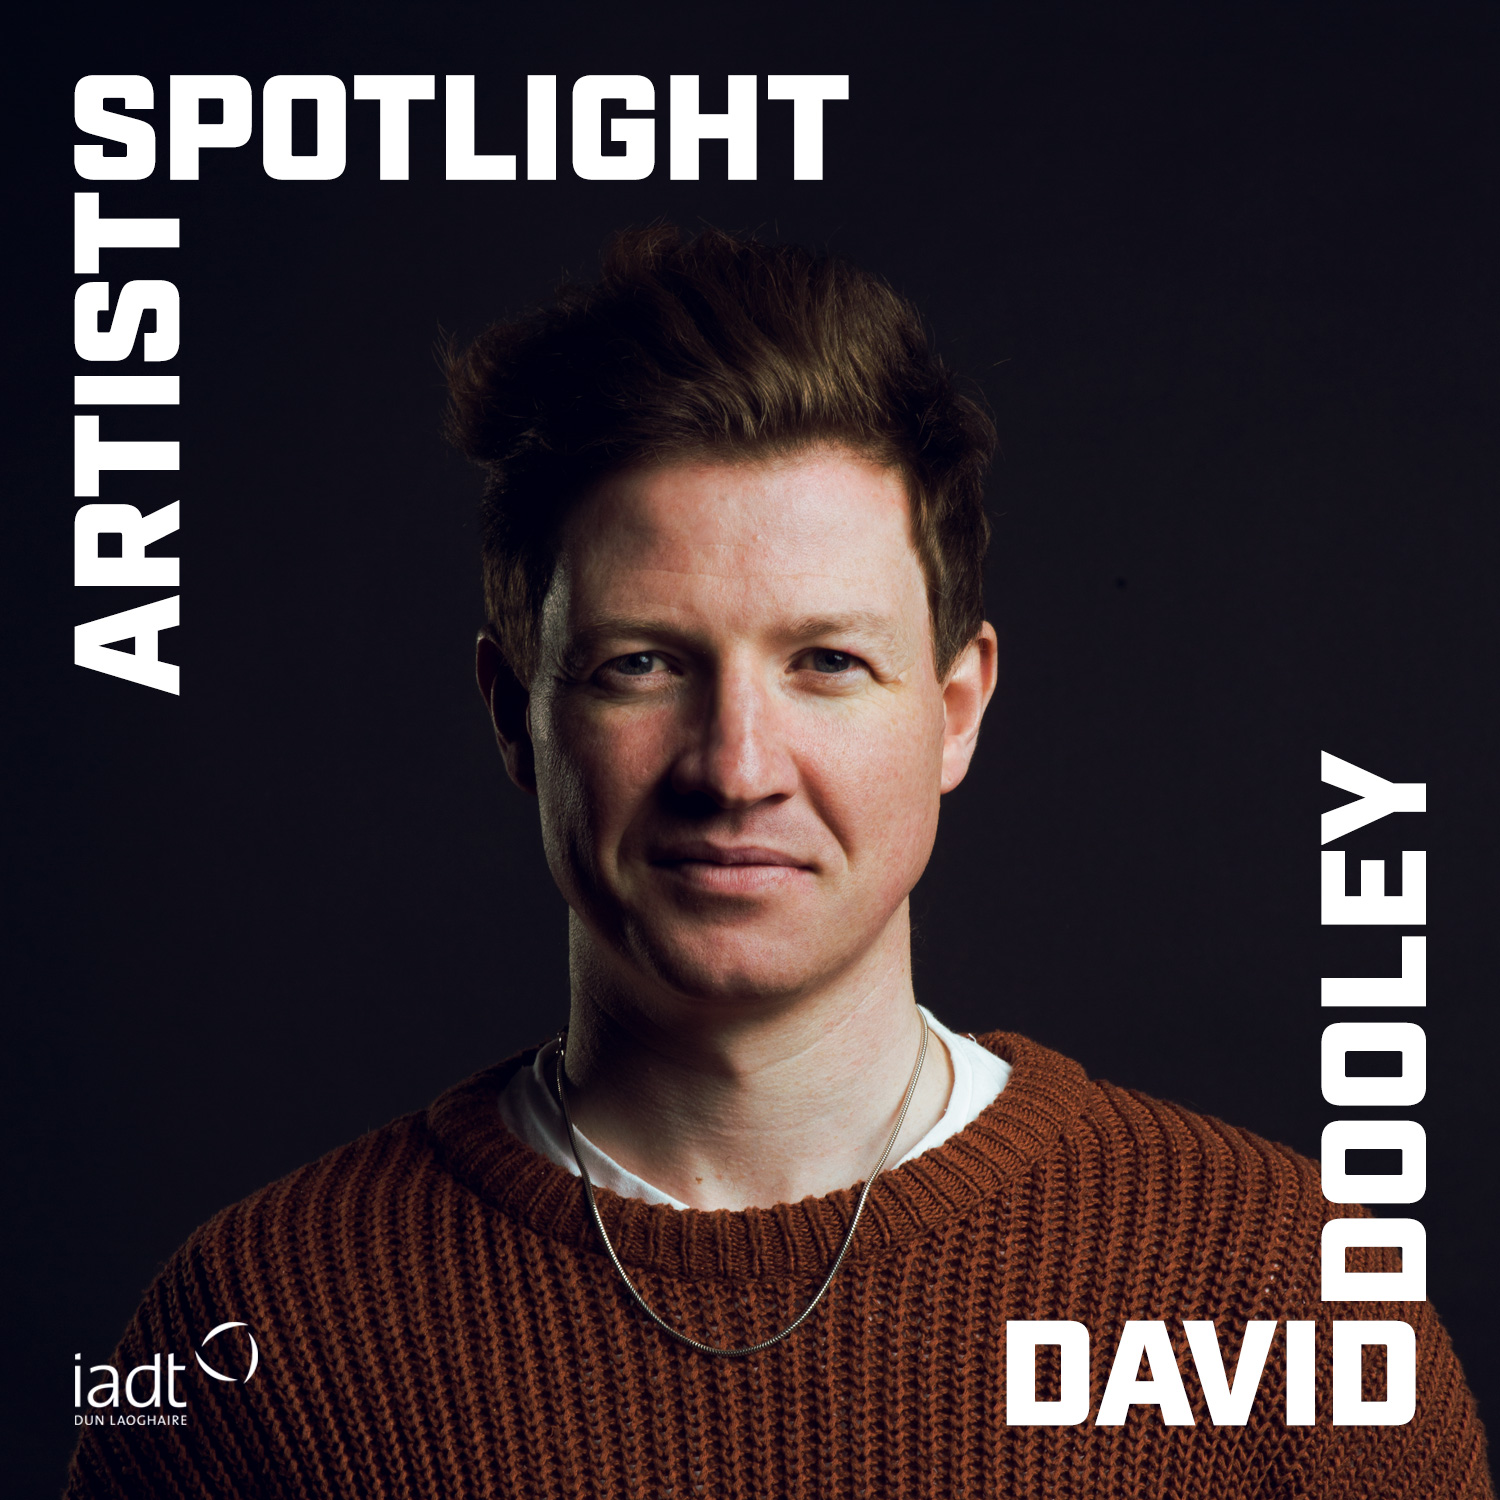 david-dooley-artist-spotlight